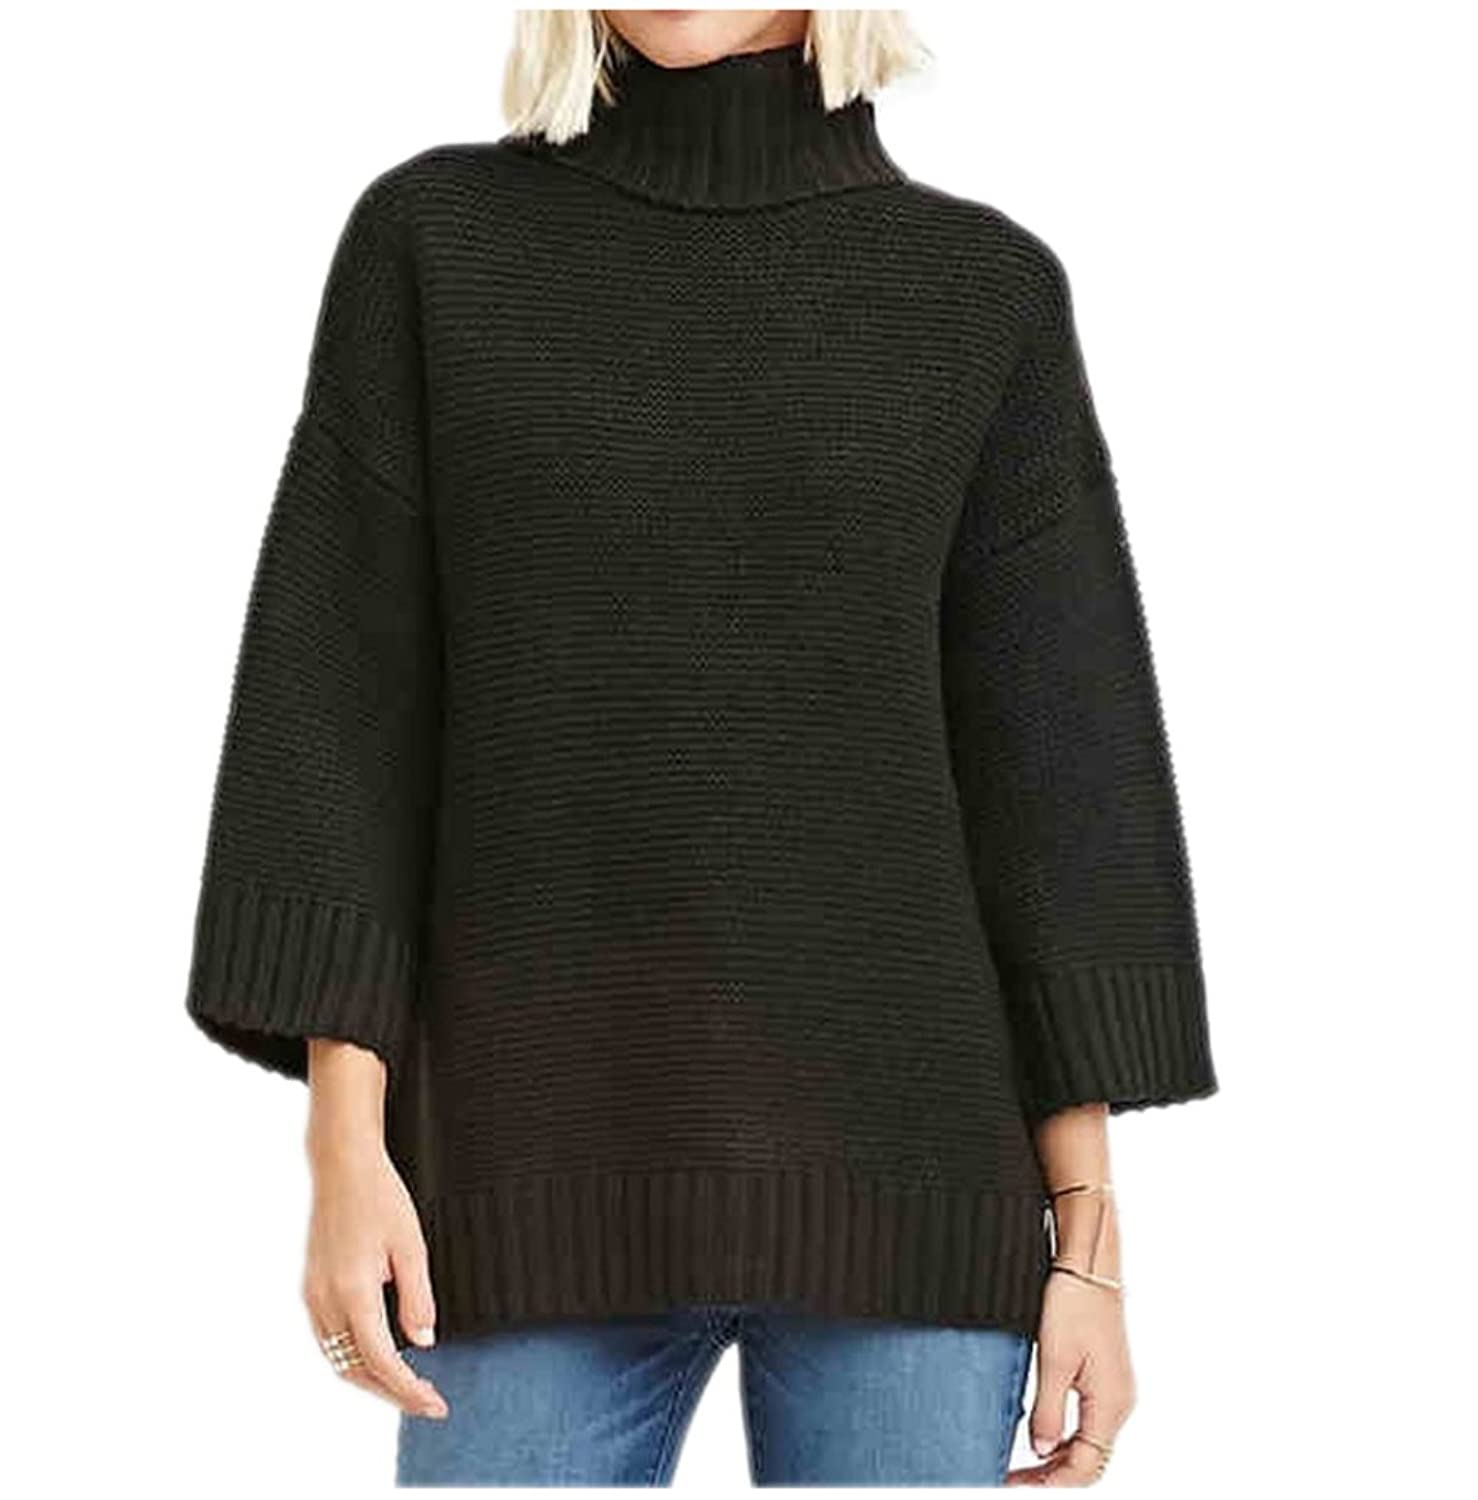 HAODUOYI Simple Fall Shoulder Sleeve All-match Loose High neckline Sweaters